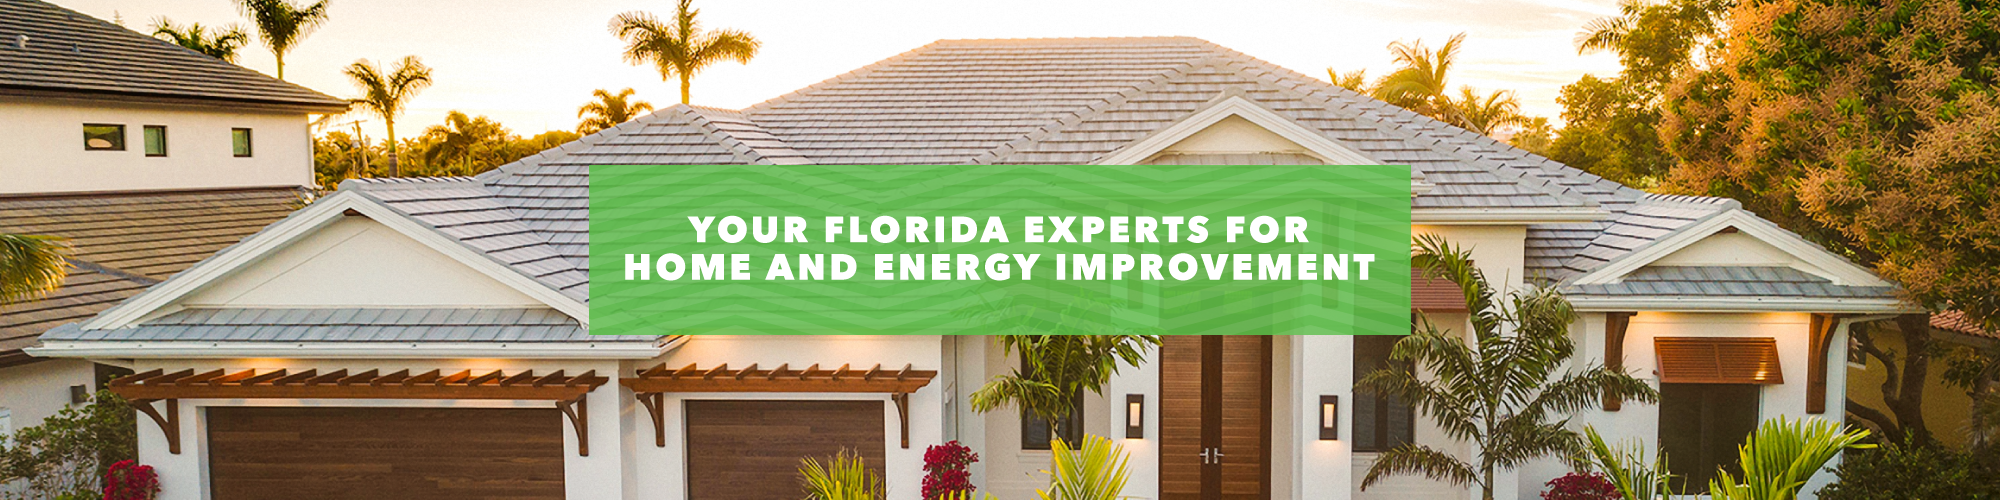 A to Z GC - Home Improvement reviews | Heating & Air Conditioning/HVAC at 5933 Ravenswood Rd - Fort Lauderdale FL